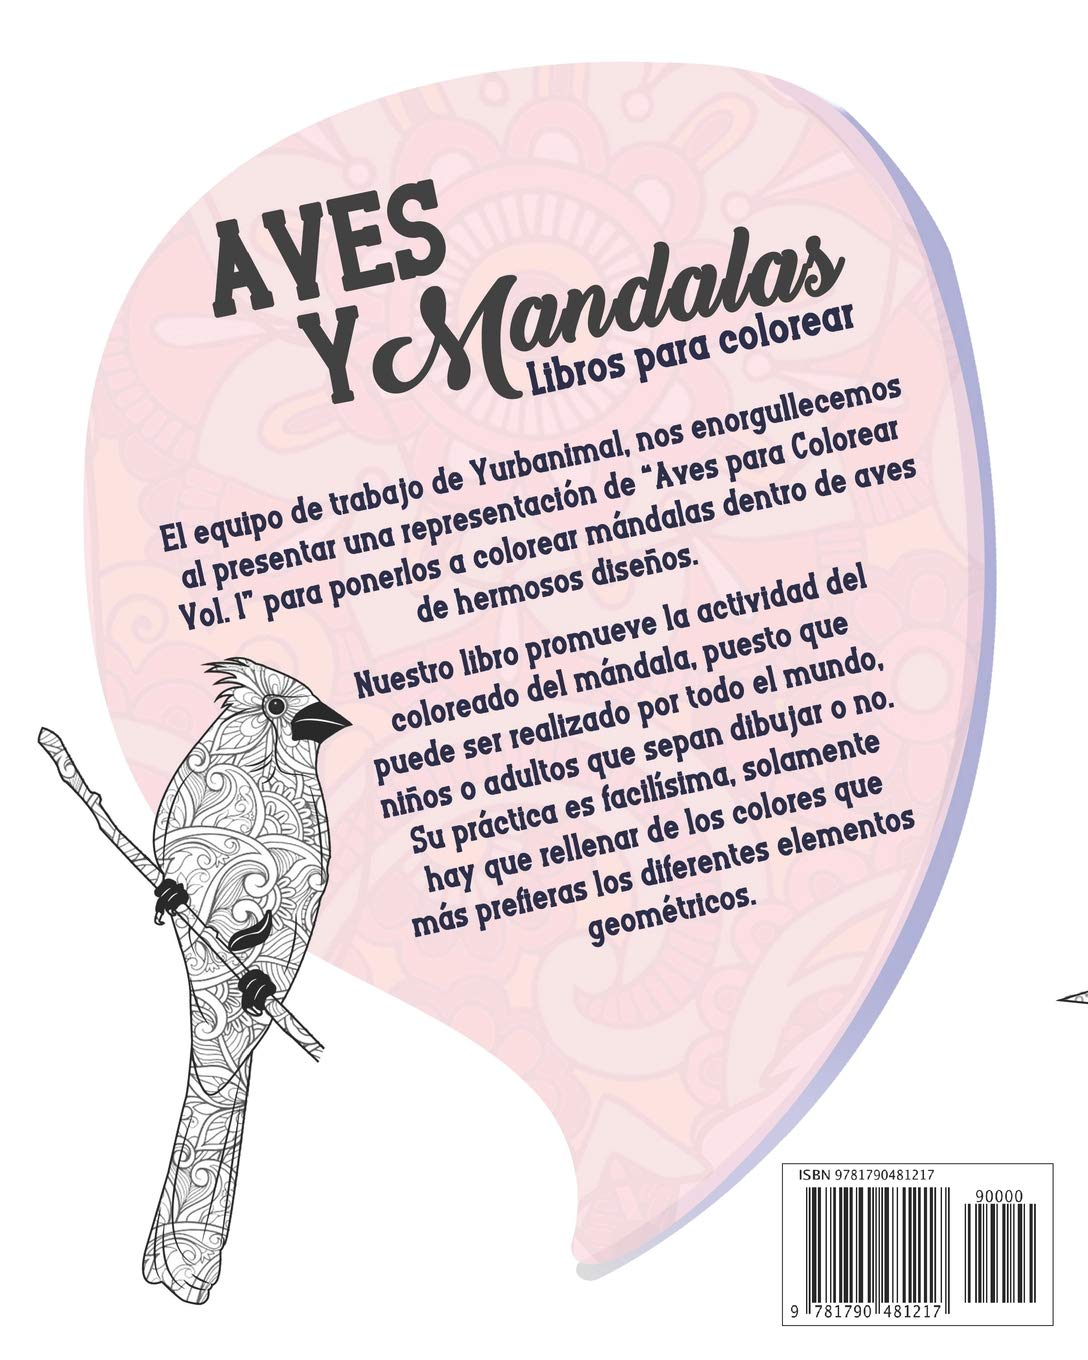 Aves y Mandalas - Libro para Colorear (Spanish Edition): Amanda Allen, Yurbanimal: 9781790481217: Amazon.com: Books